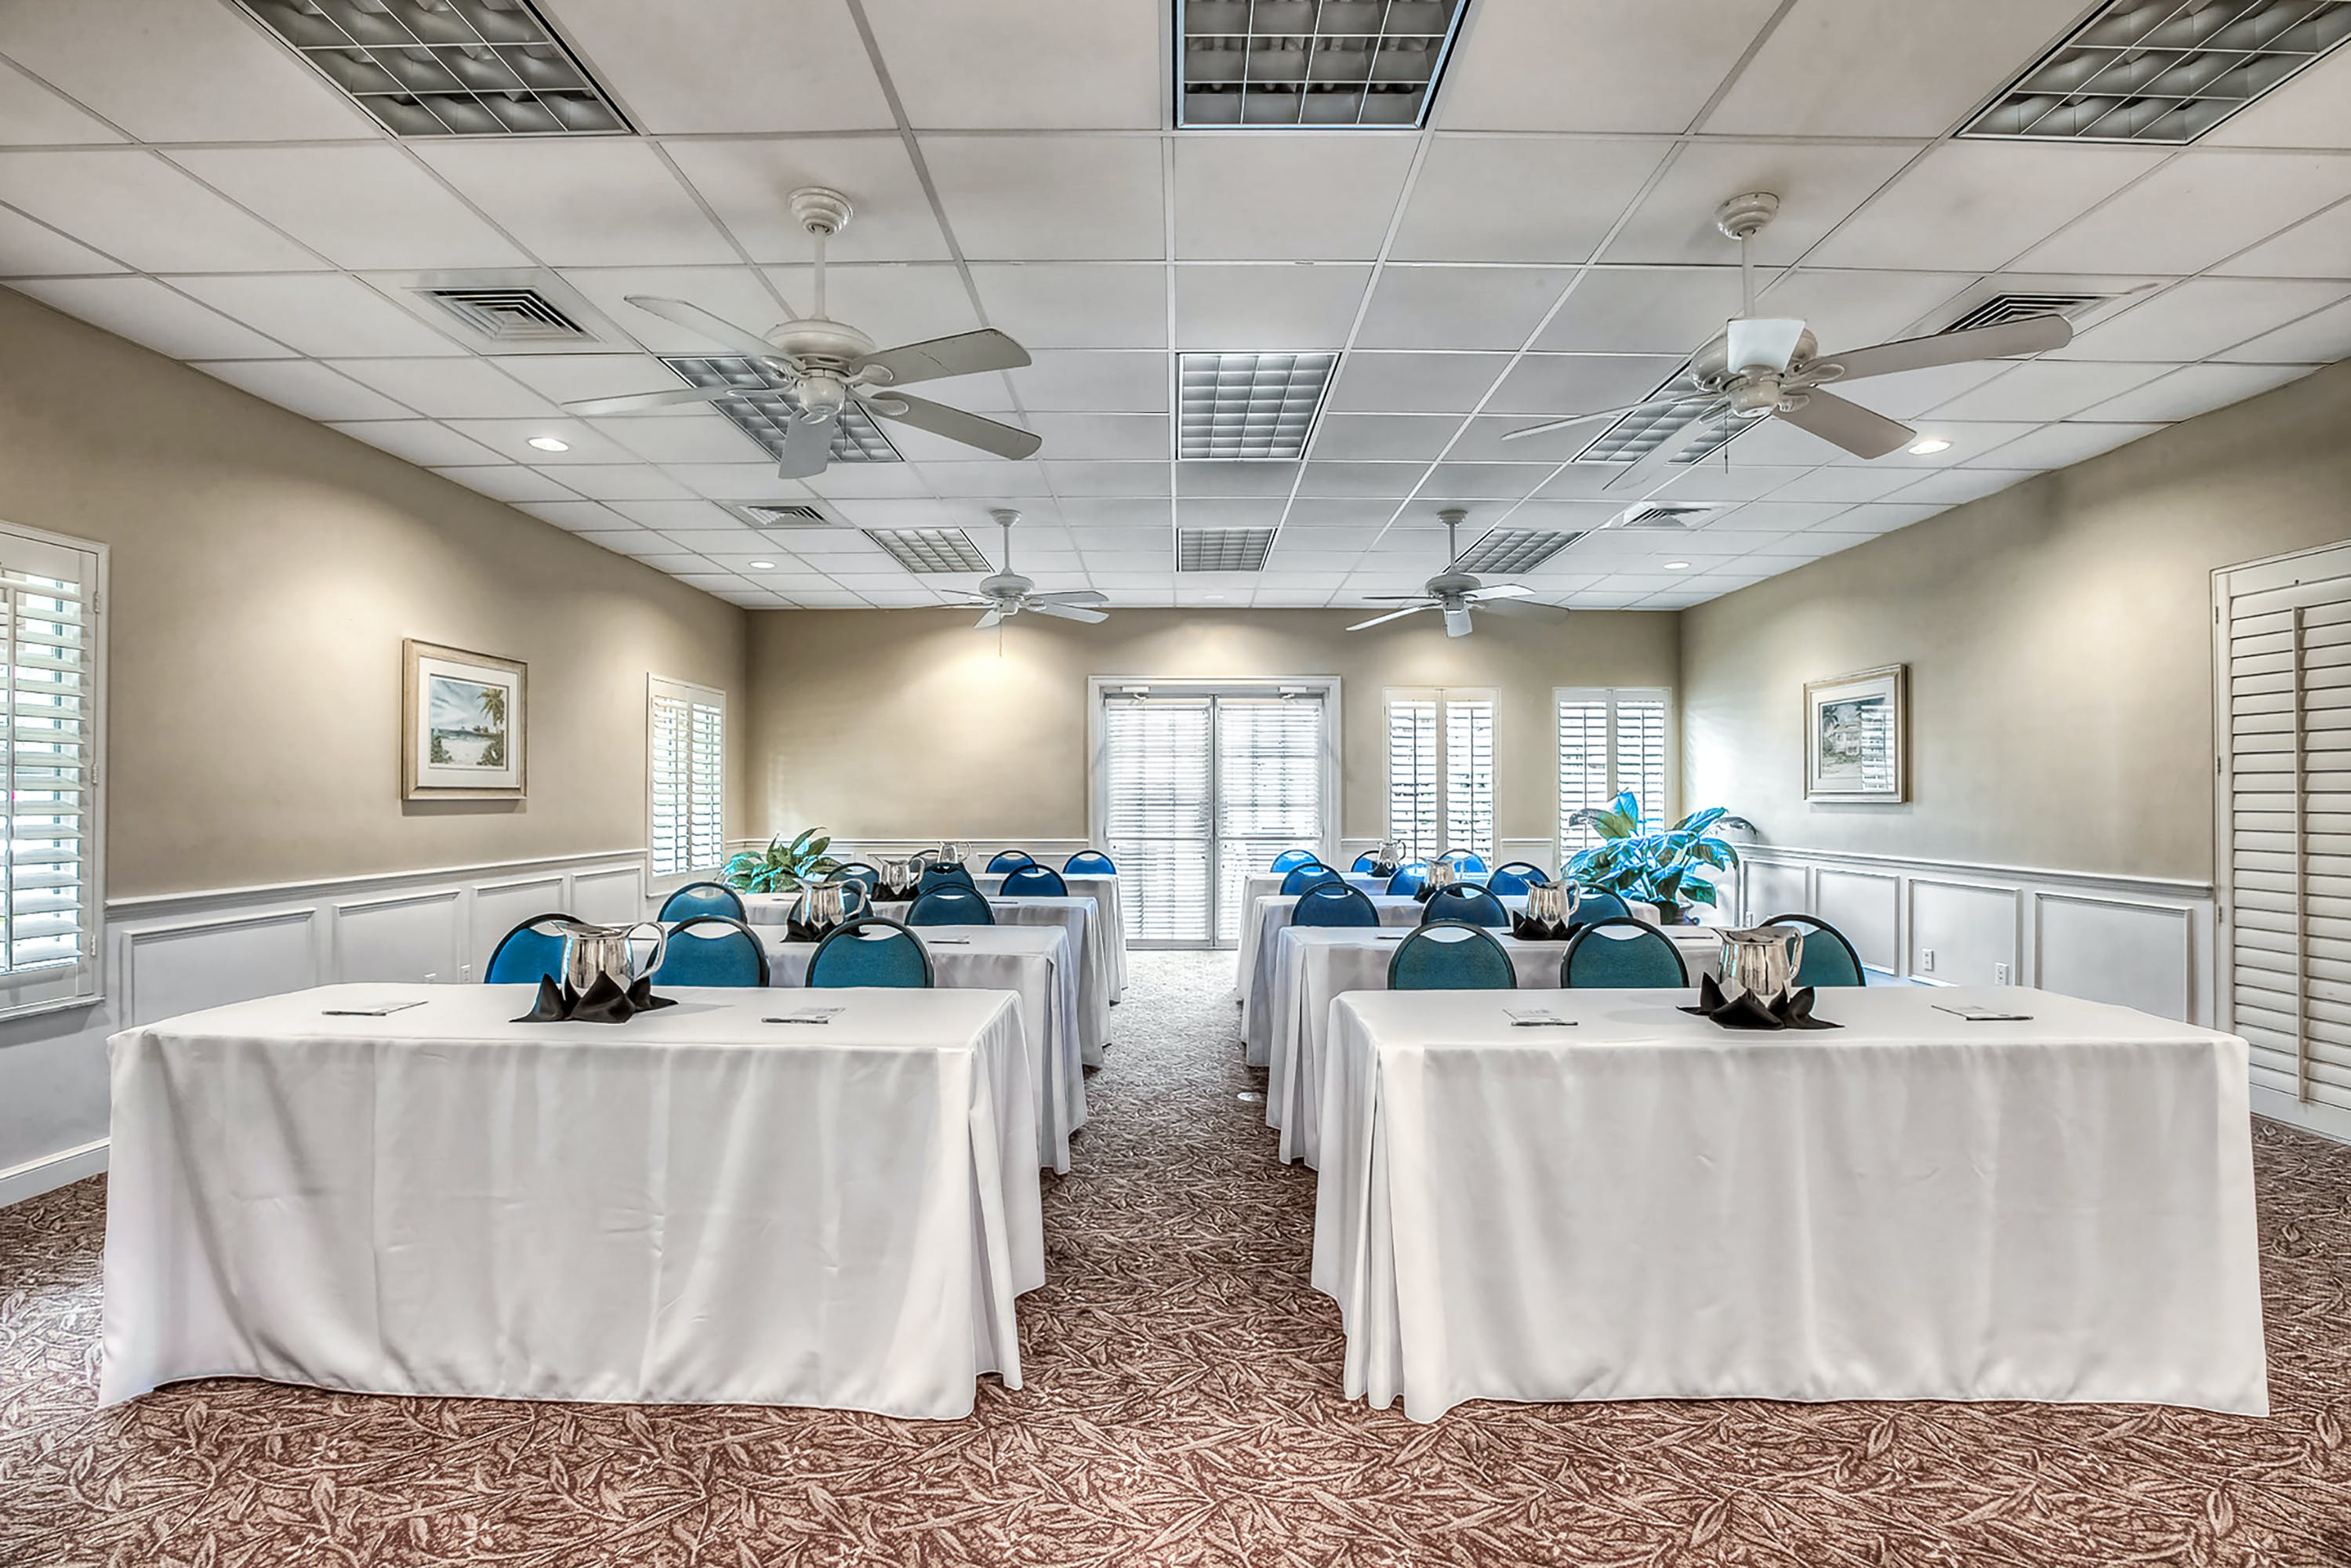 Tuscan Room meeting space with classroom-style setup with view of windows